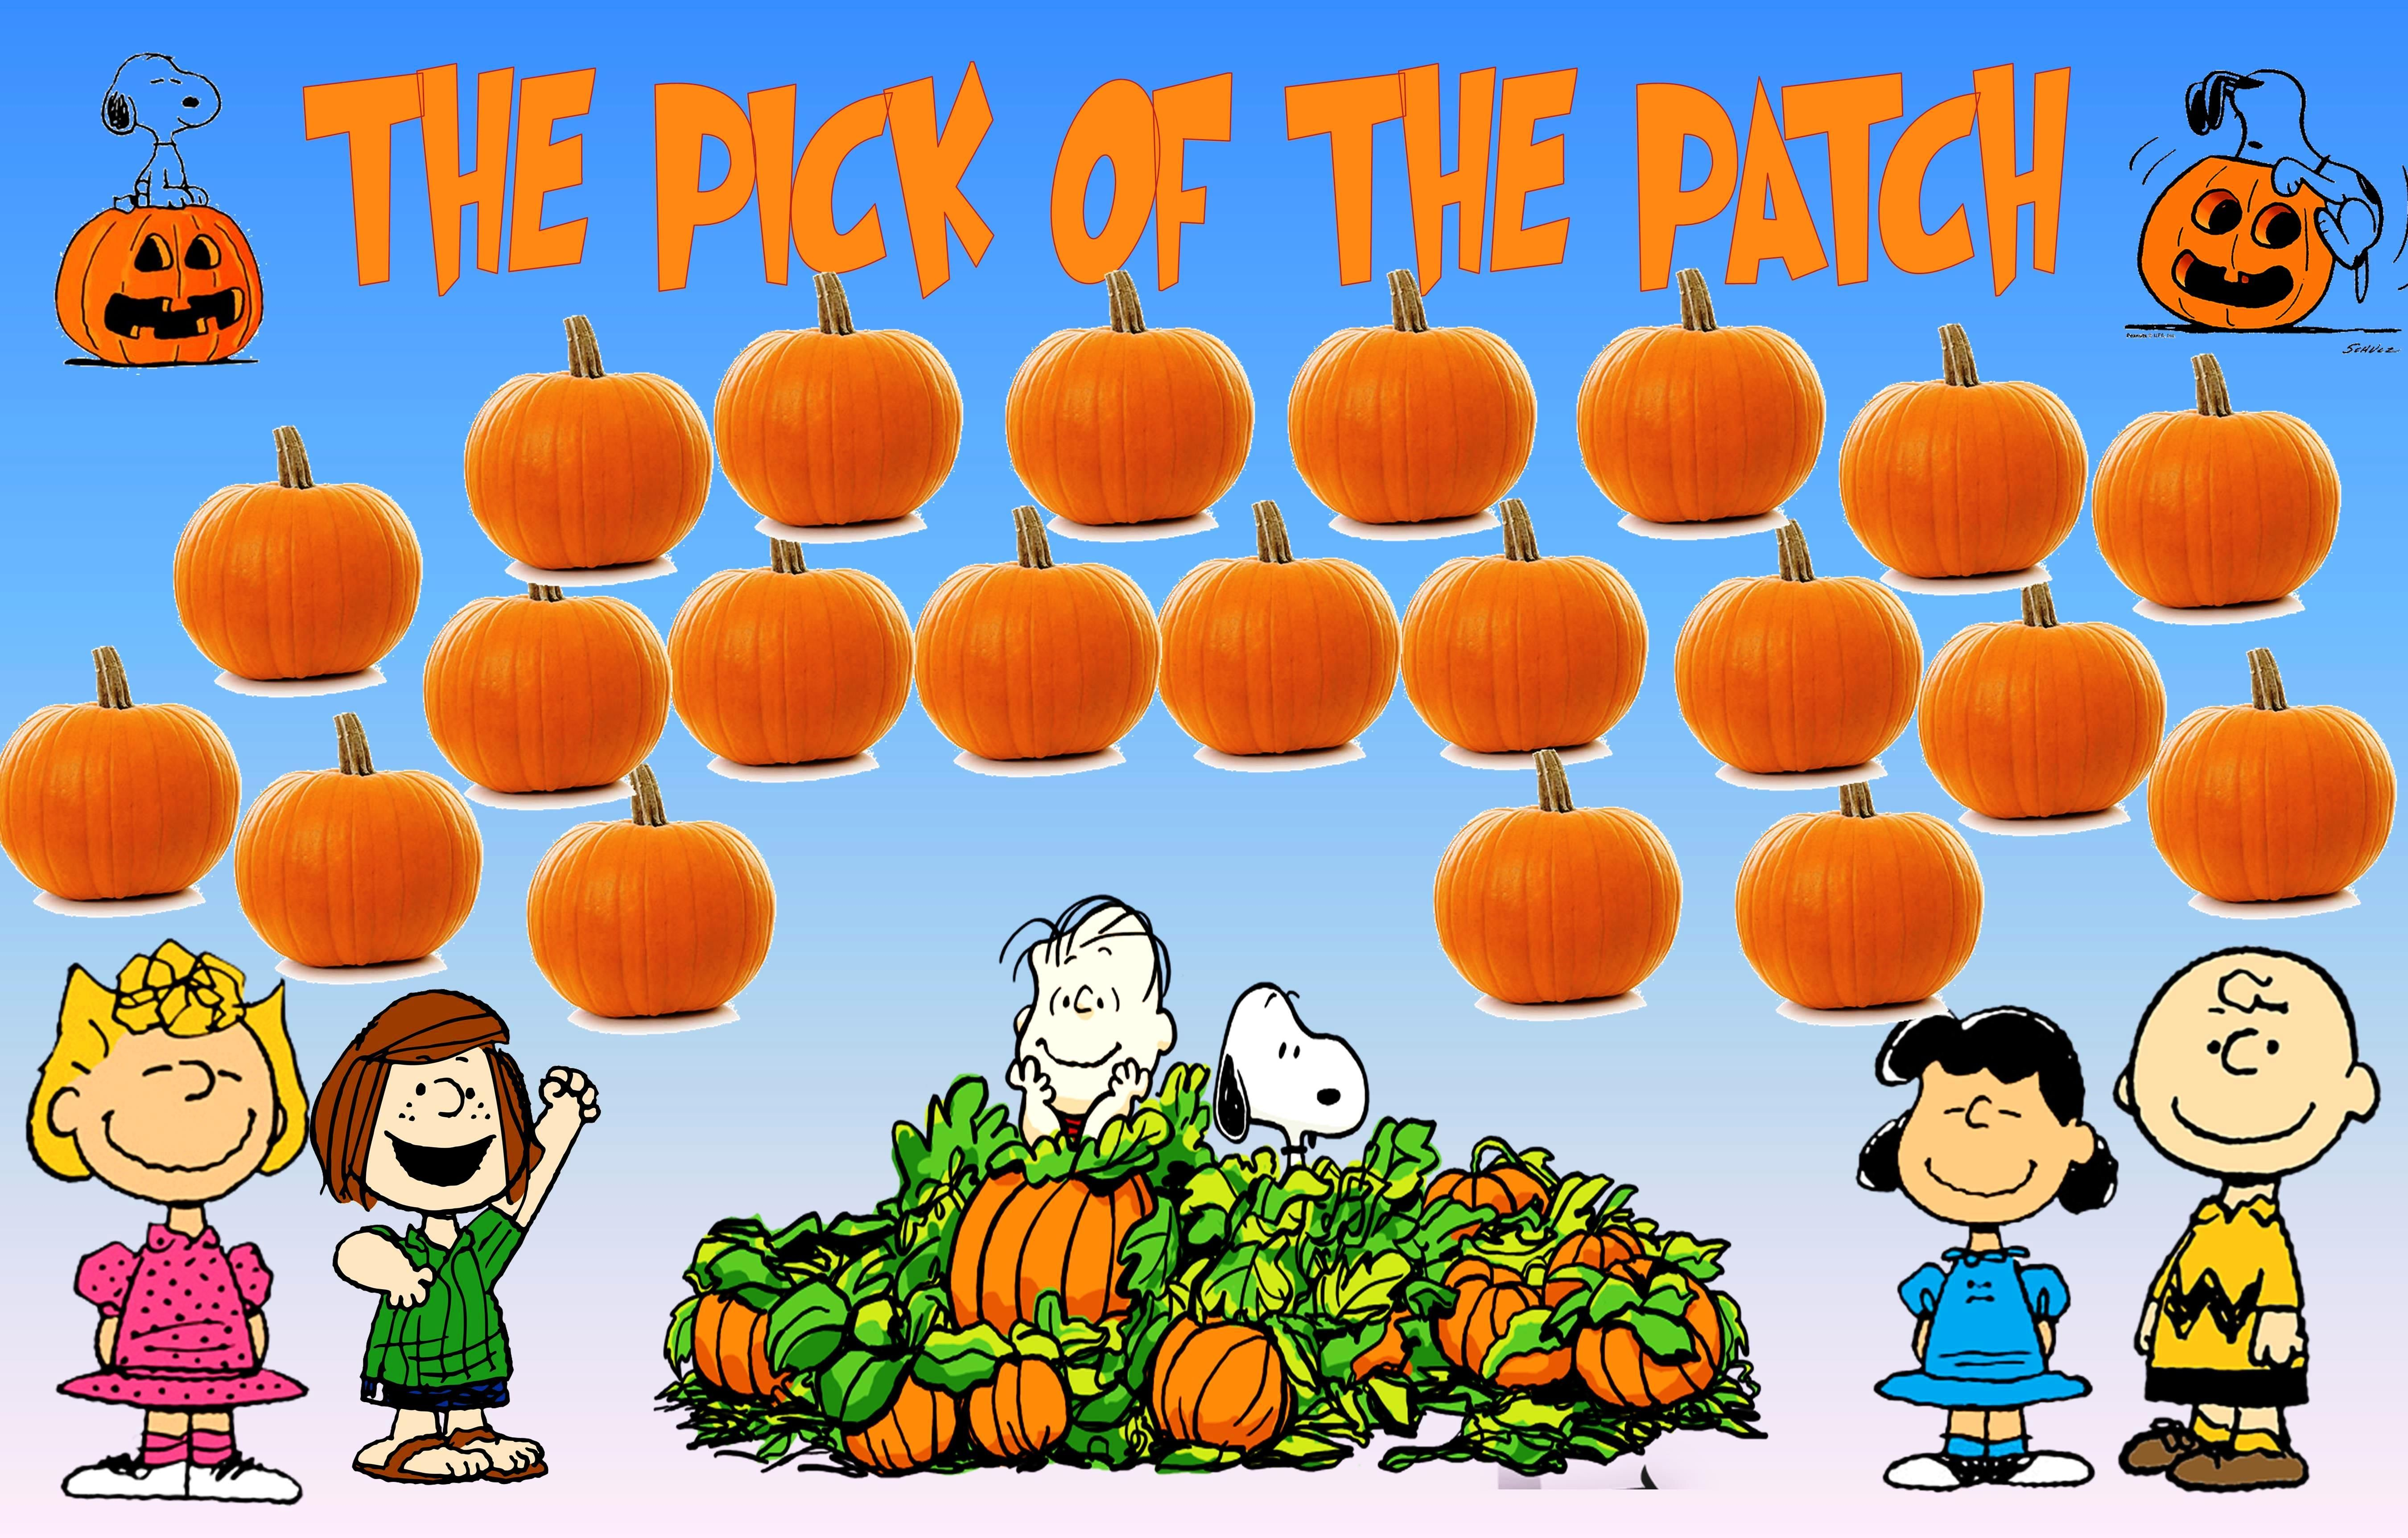 Fall idea for a board - Charlie Brown pumpkin patch bulletin board - just print kid's photos and glue them on the individual pumpkin #pumpkinpatchbulletinboard Fall idea for a board - Charlie Brown pumpkin patch bulletin board - just print kid's photos and glue them on the individual pumpkin #pumpkinpatchbulletinboard